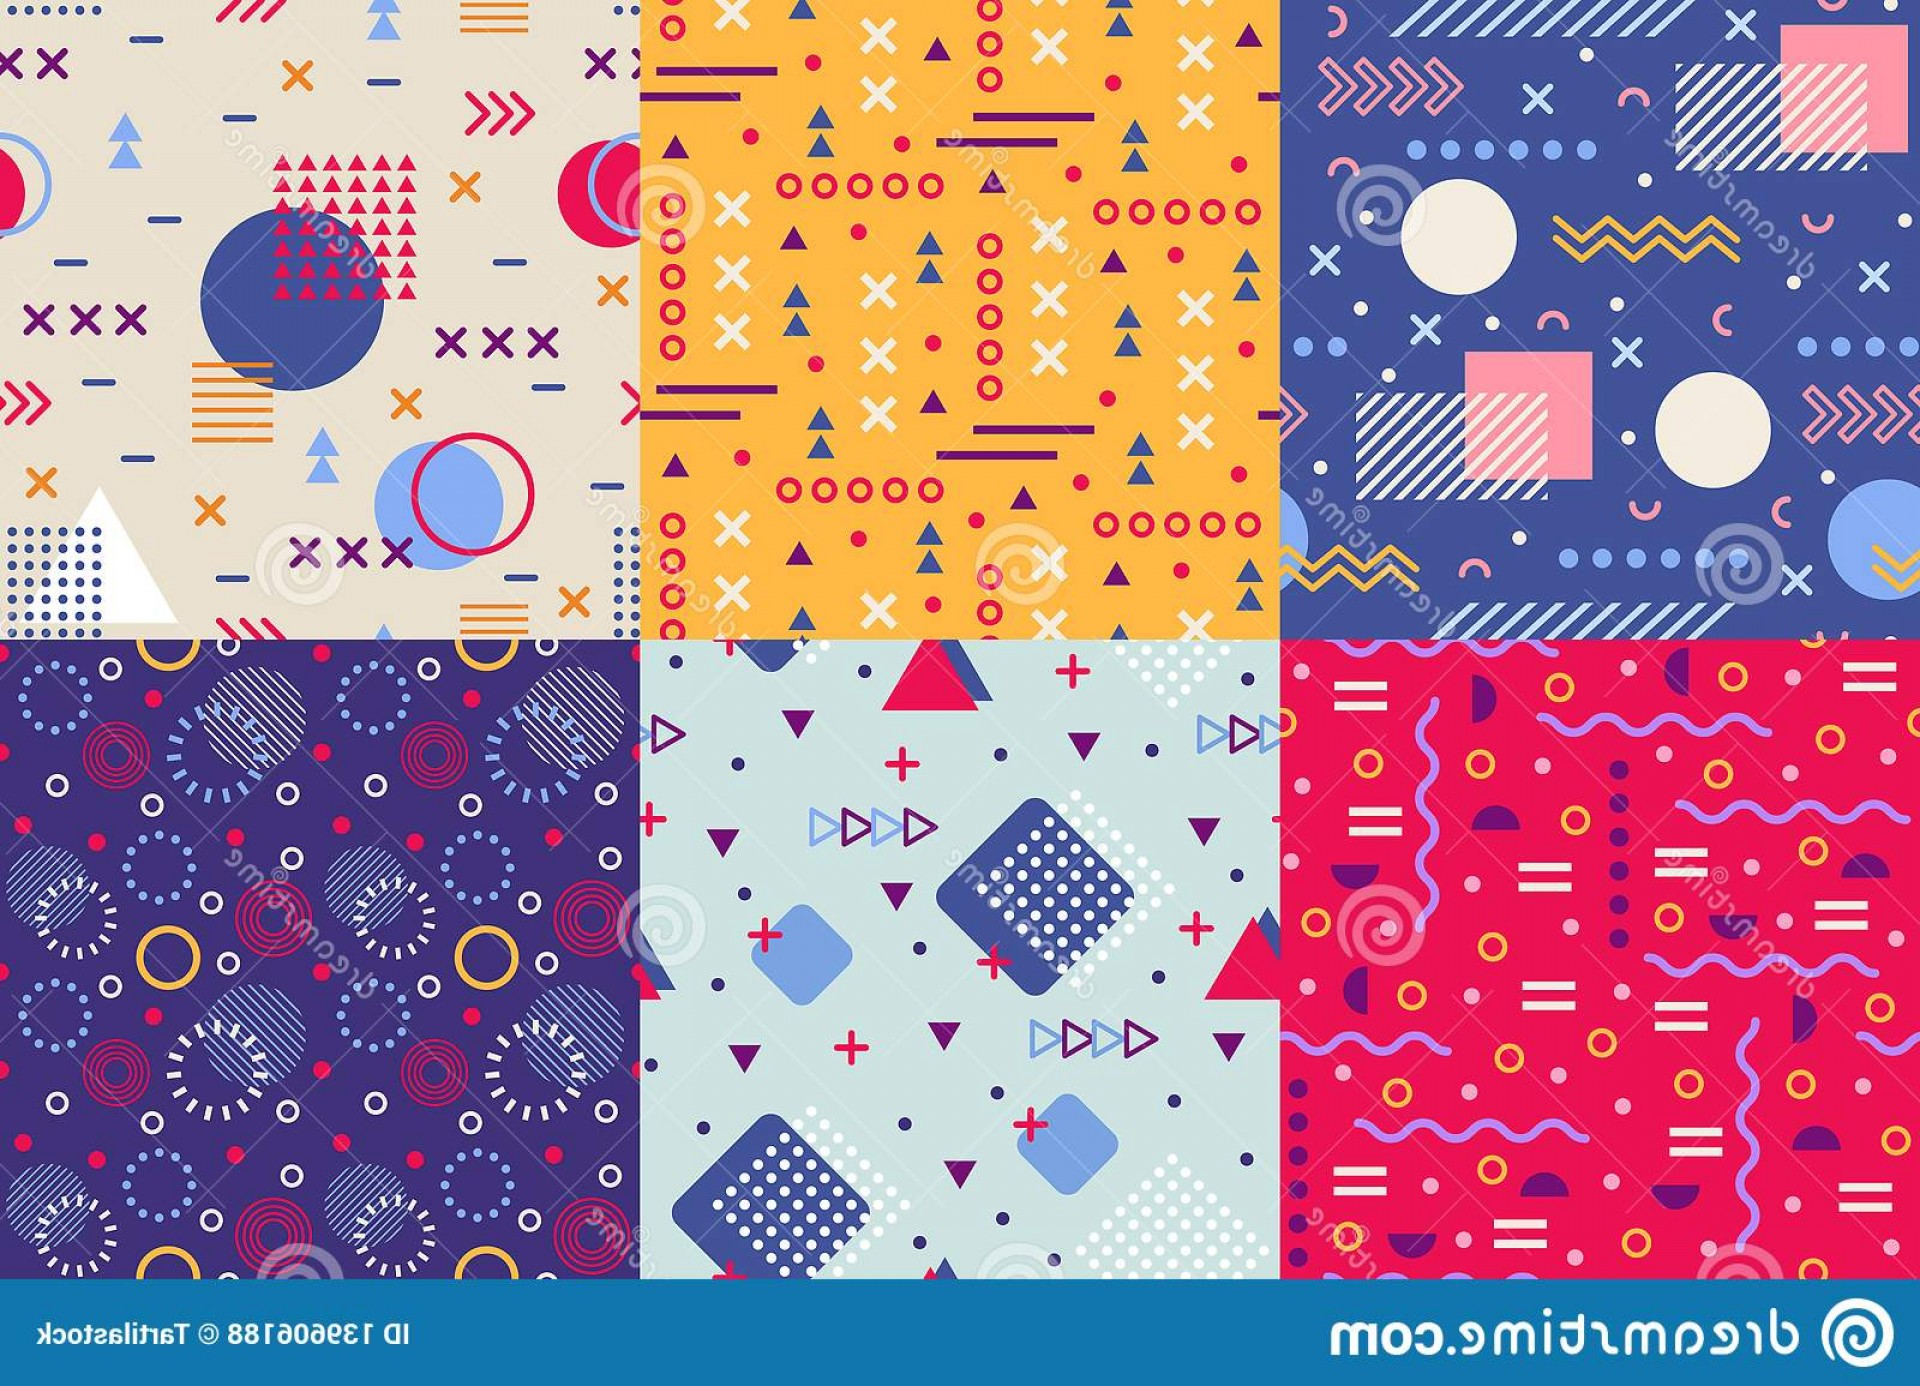 Vector Geometric Abstract Shapes Phone Wallpapers: Memphis Funky Pattern Retro S Abstract Shapes Backgrounds Creative Shape Texture Poster S Geometric Wallpaper Hipster Memphis Image